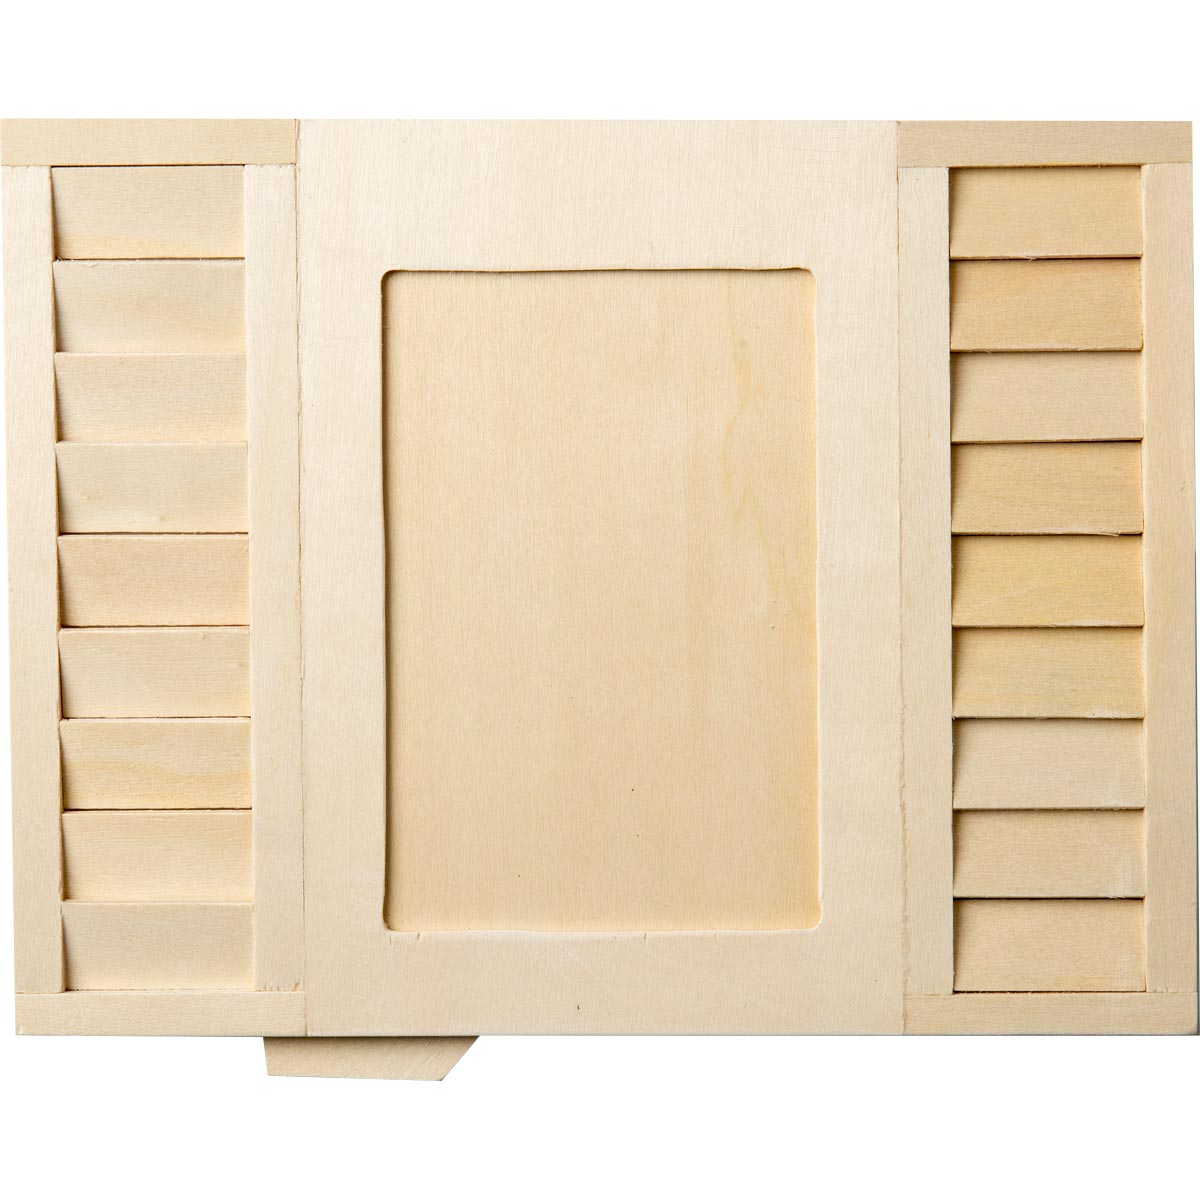 Plaid ® Wood Surfaces - Frames - Shutter, 10